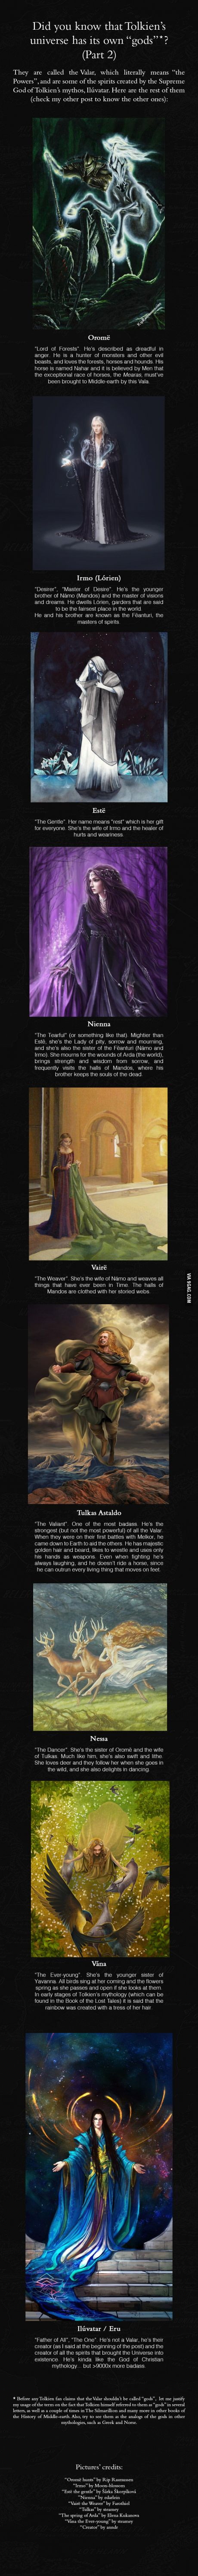 best ideas about jrr tolkien tolkien hobbit and the valar part 2 j r r tolkien s mythology